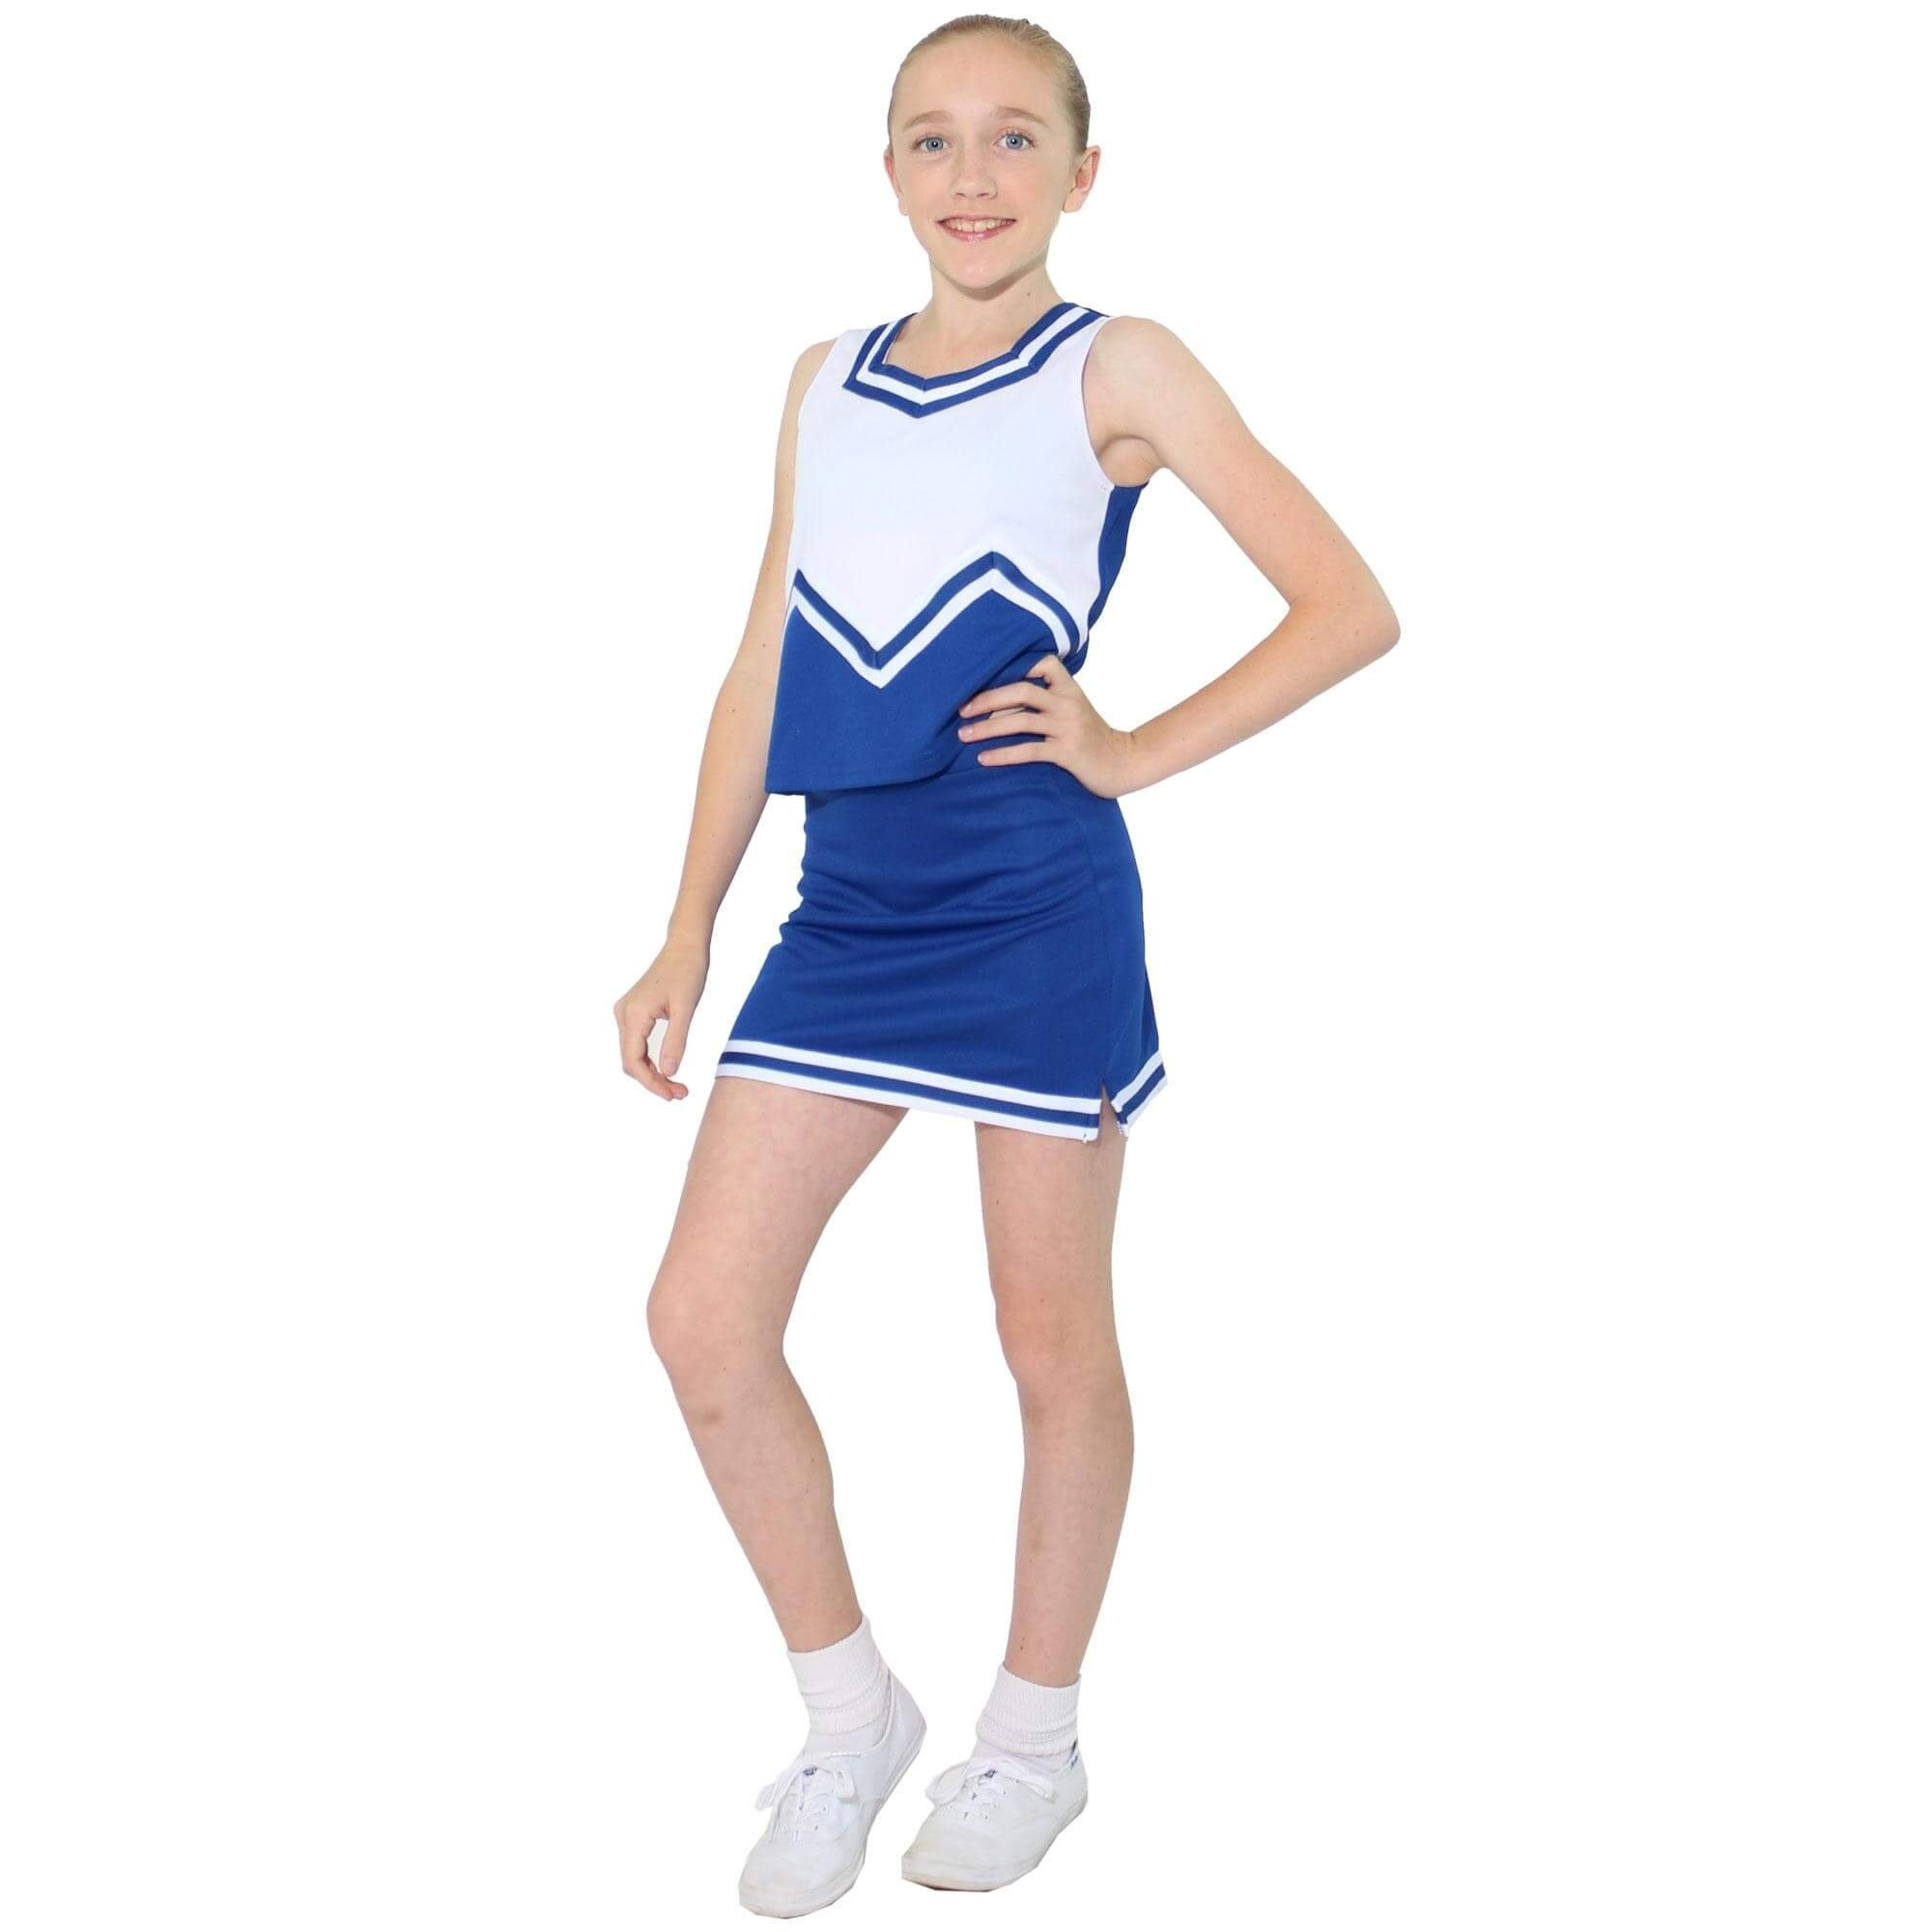 Danzcue Child M Sweetheart Cheerleaders Uniform Set